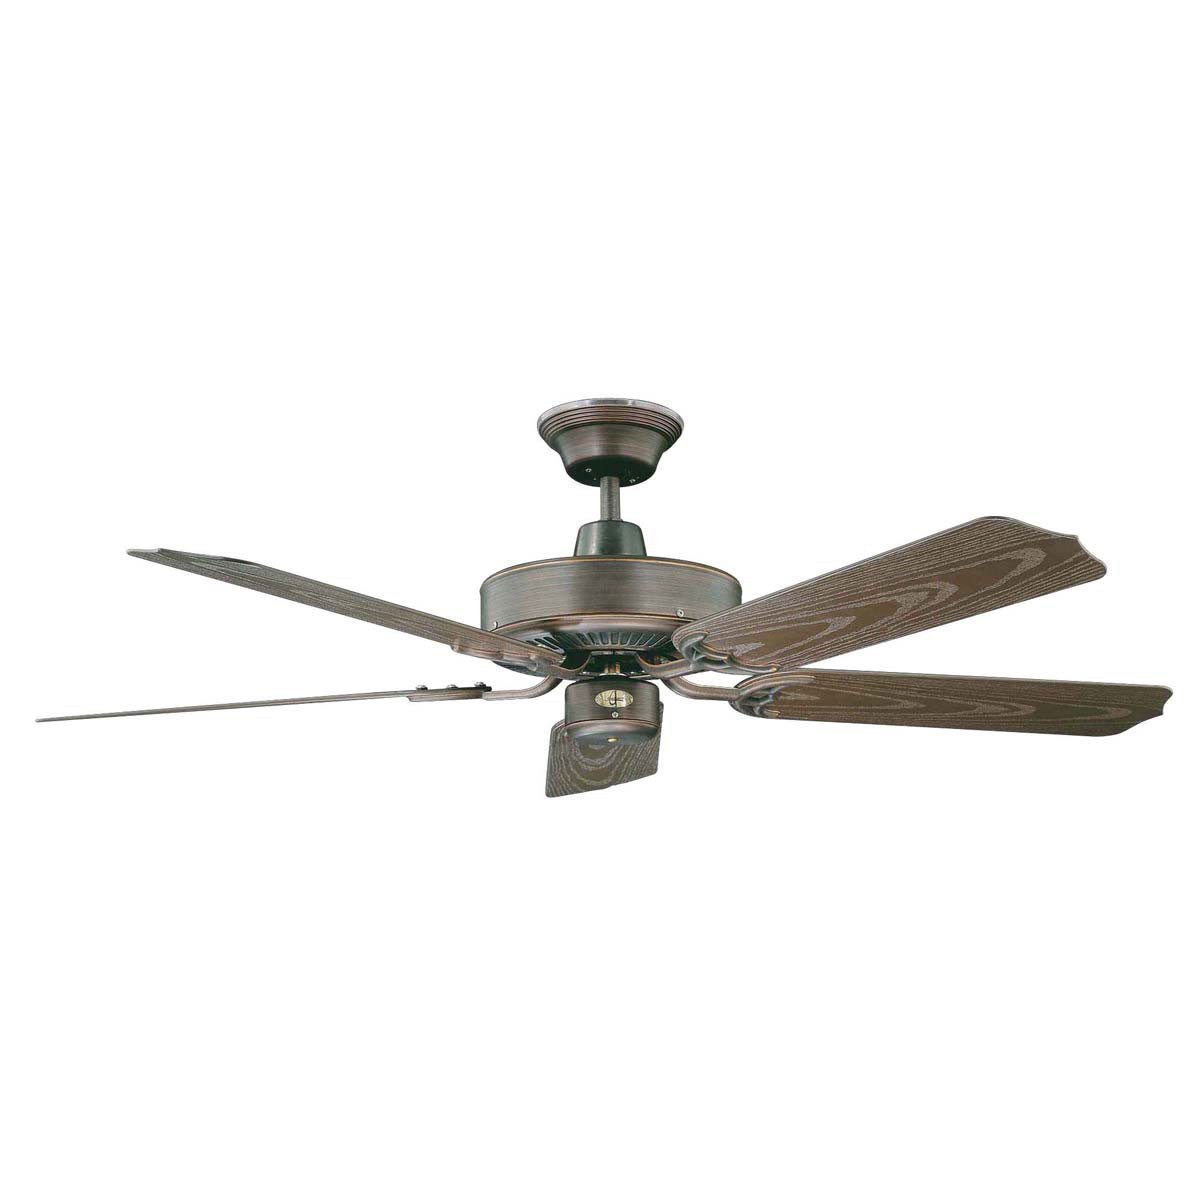 "Concord Fans 44"" Wet Location Oil Rubbed Bronze Small Outdoor Ceiling Fan"